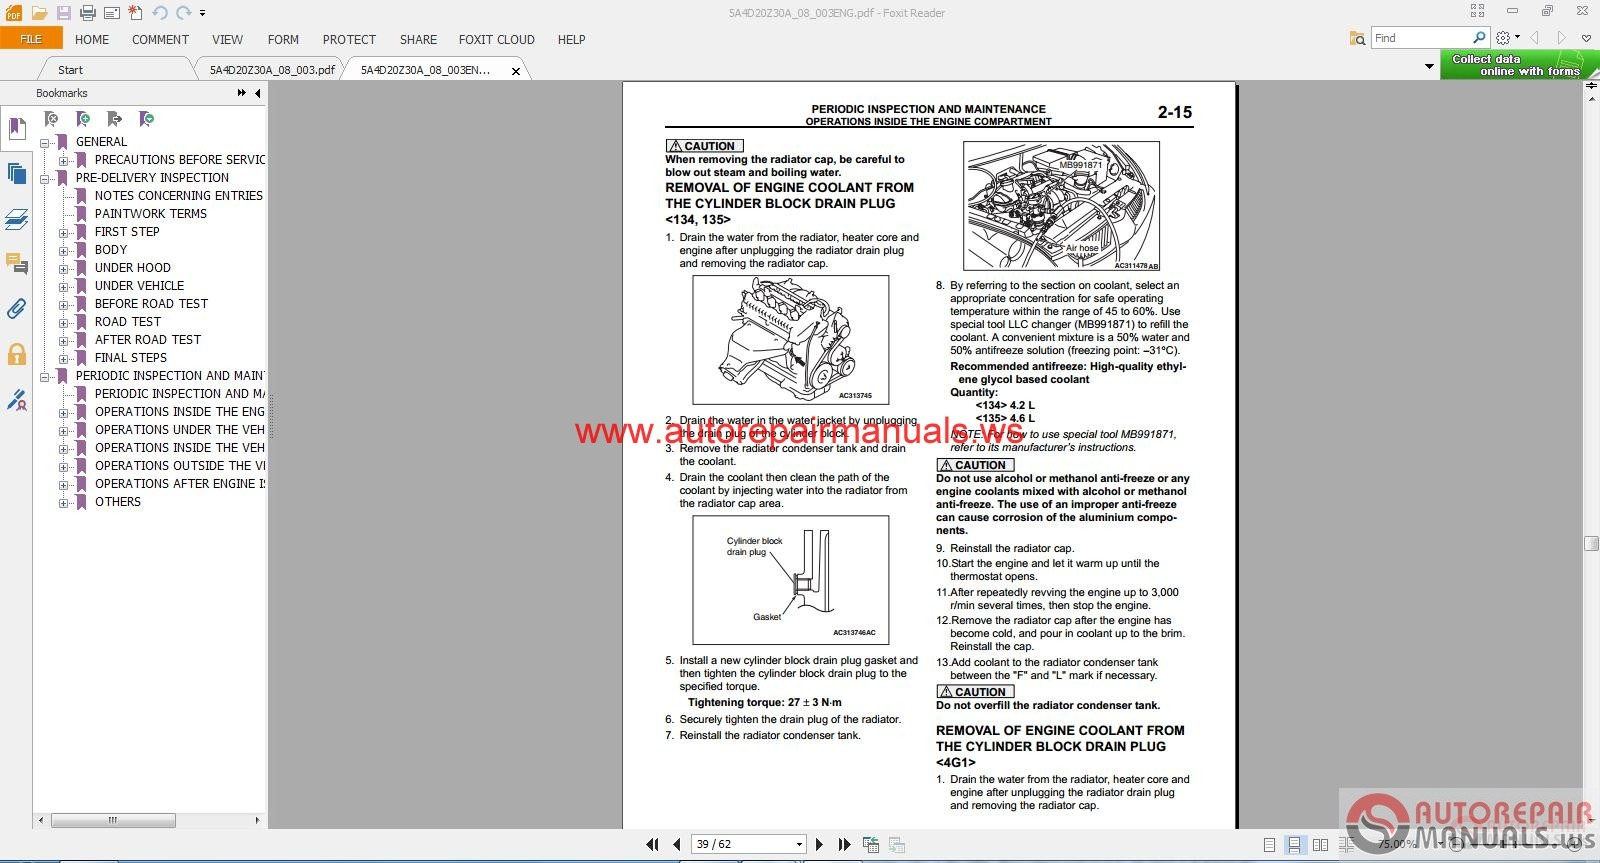 Mitsubishi carisma service manual free download